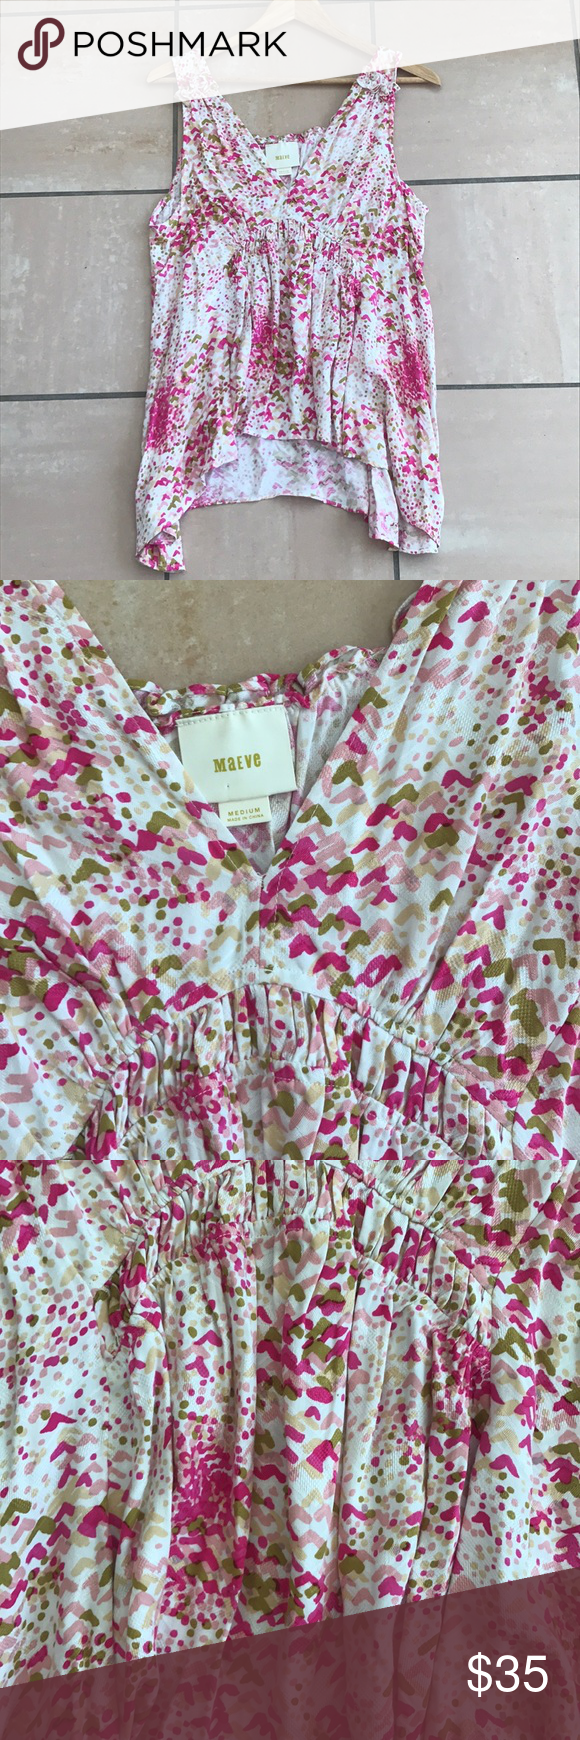 d3a5346c68ce Maeve Anthropologie Pink Patterned Boho Tank Maeve Branded top sold at  Anthropologie. The top is